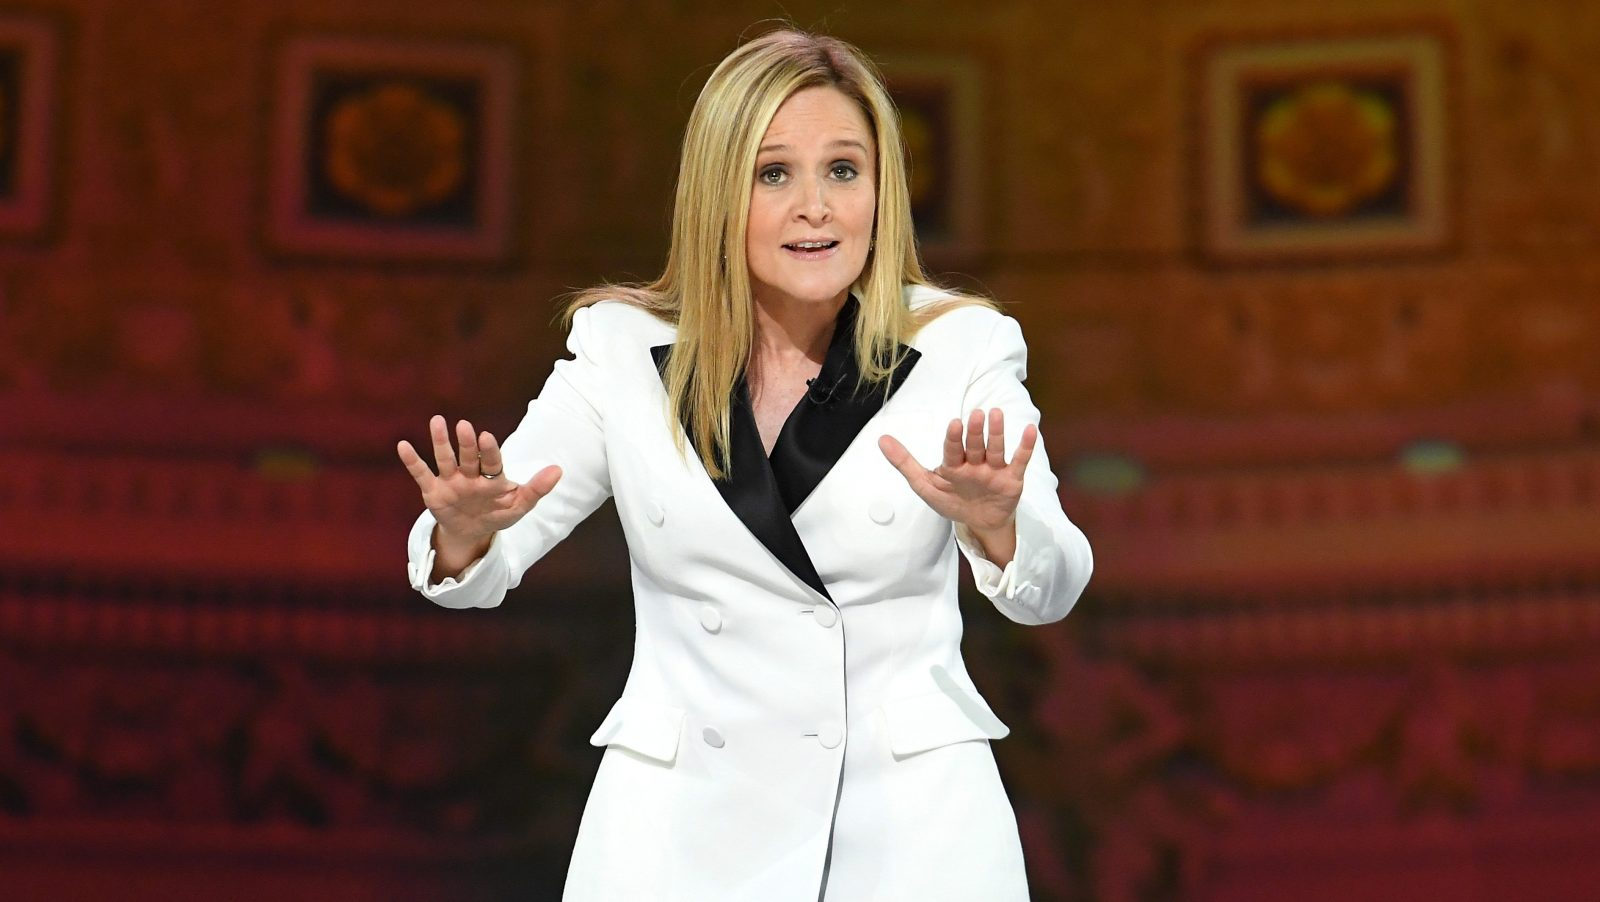 WASHINGTON, DC - APRIL 29:  Host Samantha Bee speaks onstage during Full Frontal With Samantha Bee's Not The White House Correspondents' Dinner at DAR Constitution Hall on April 29, 2017 in Washington, DC.  (Photo by Dimitrios Kambouris/Getty Images for TBS) *** Local Caption *** Samantha Bee